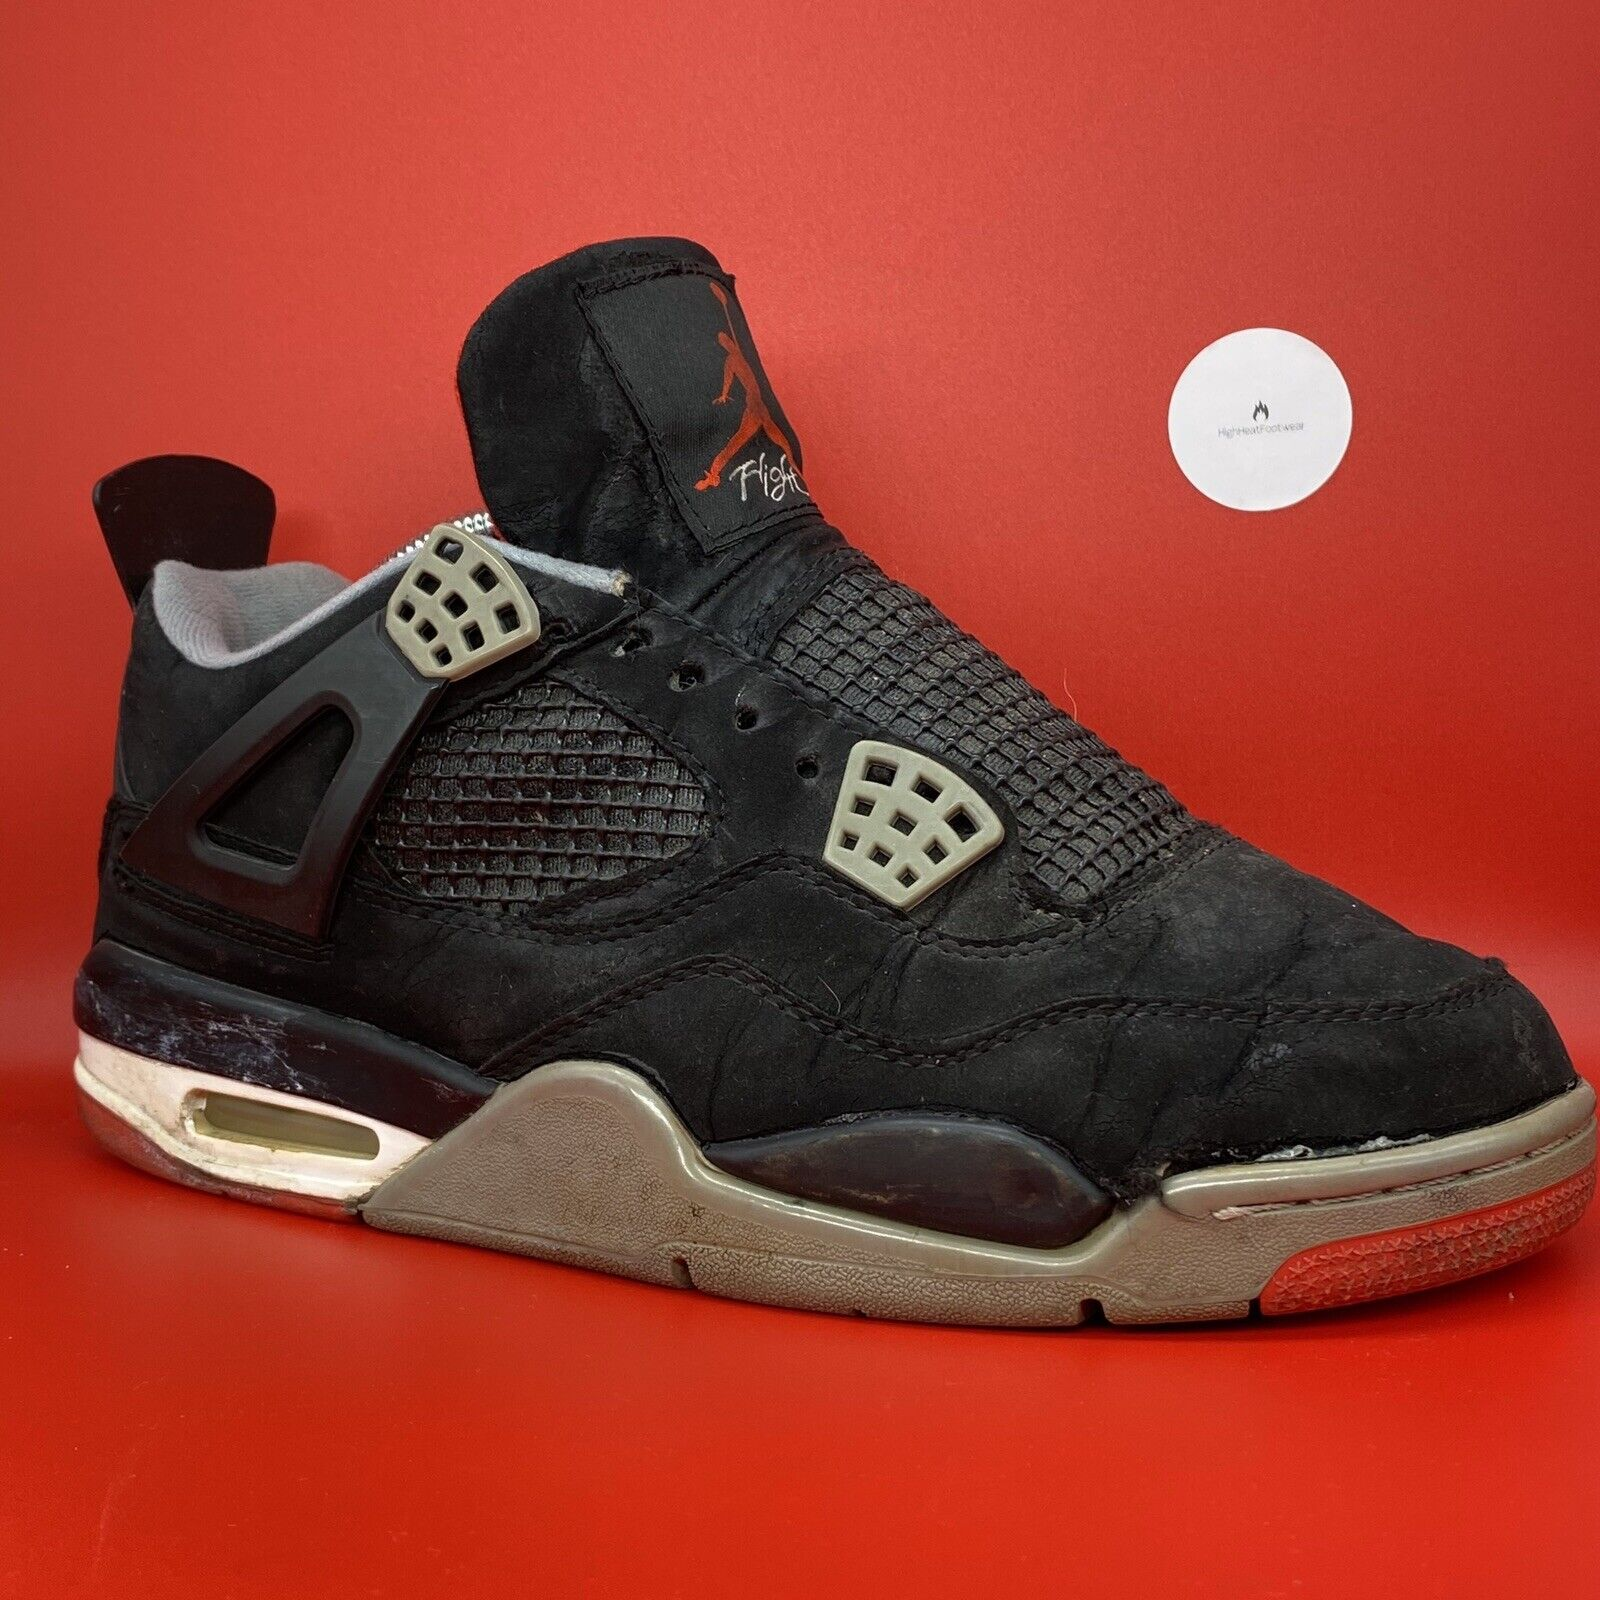 Nike air Jordan Retro 4 Bred Us9.5 Eminem Undefeated Cement